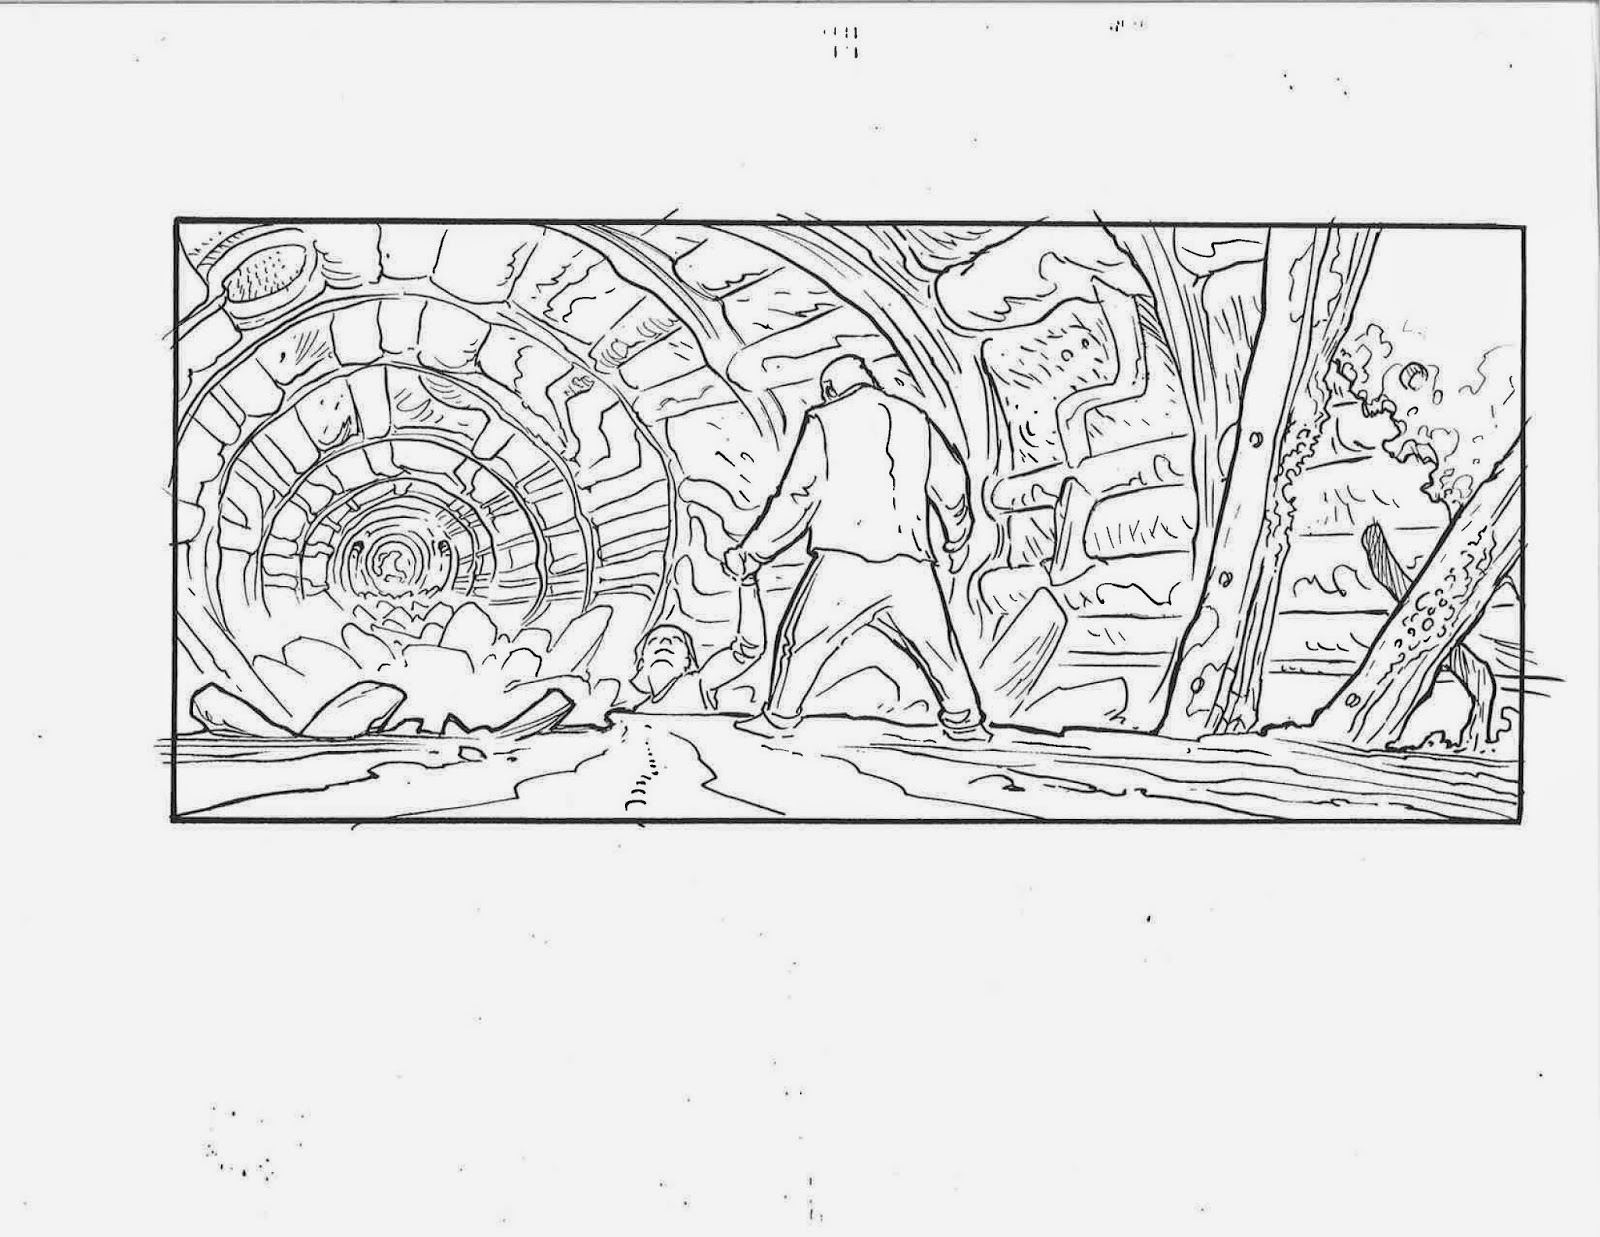 ricardo delgado u0026 39 s blog  matrix storyboards  neo in the tunnels 02